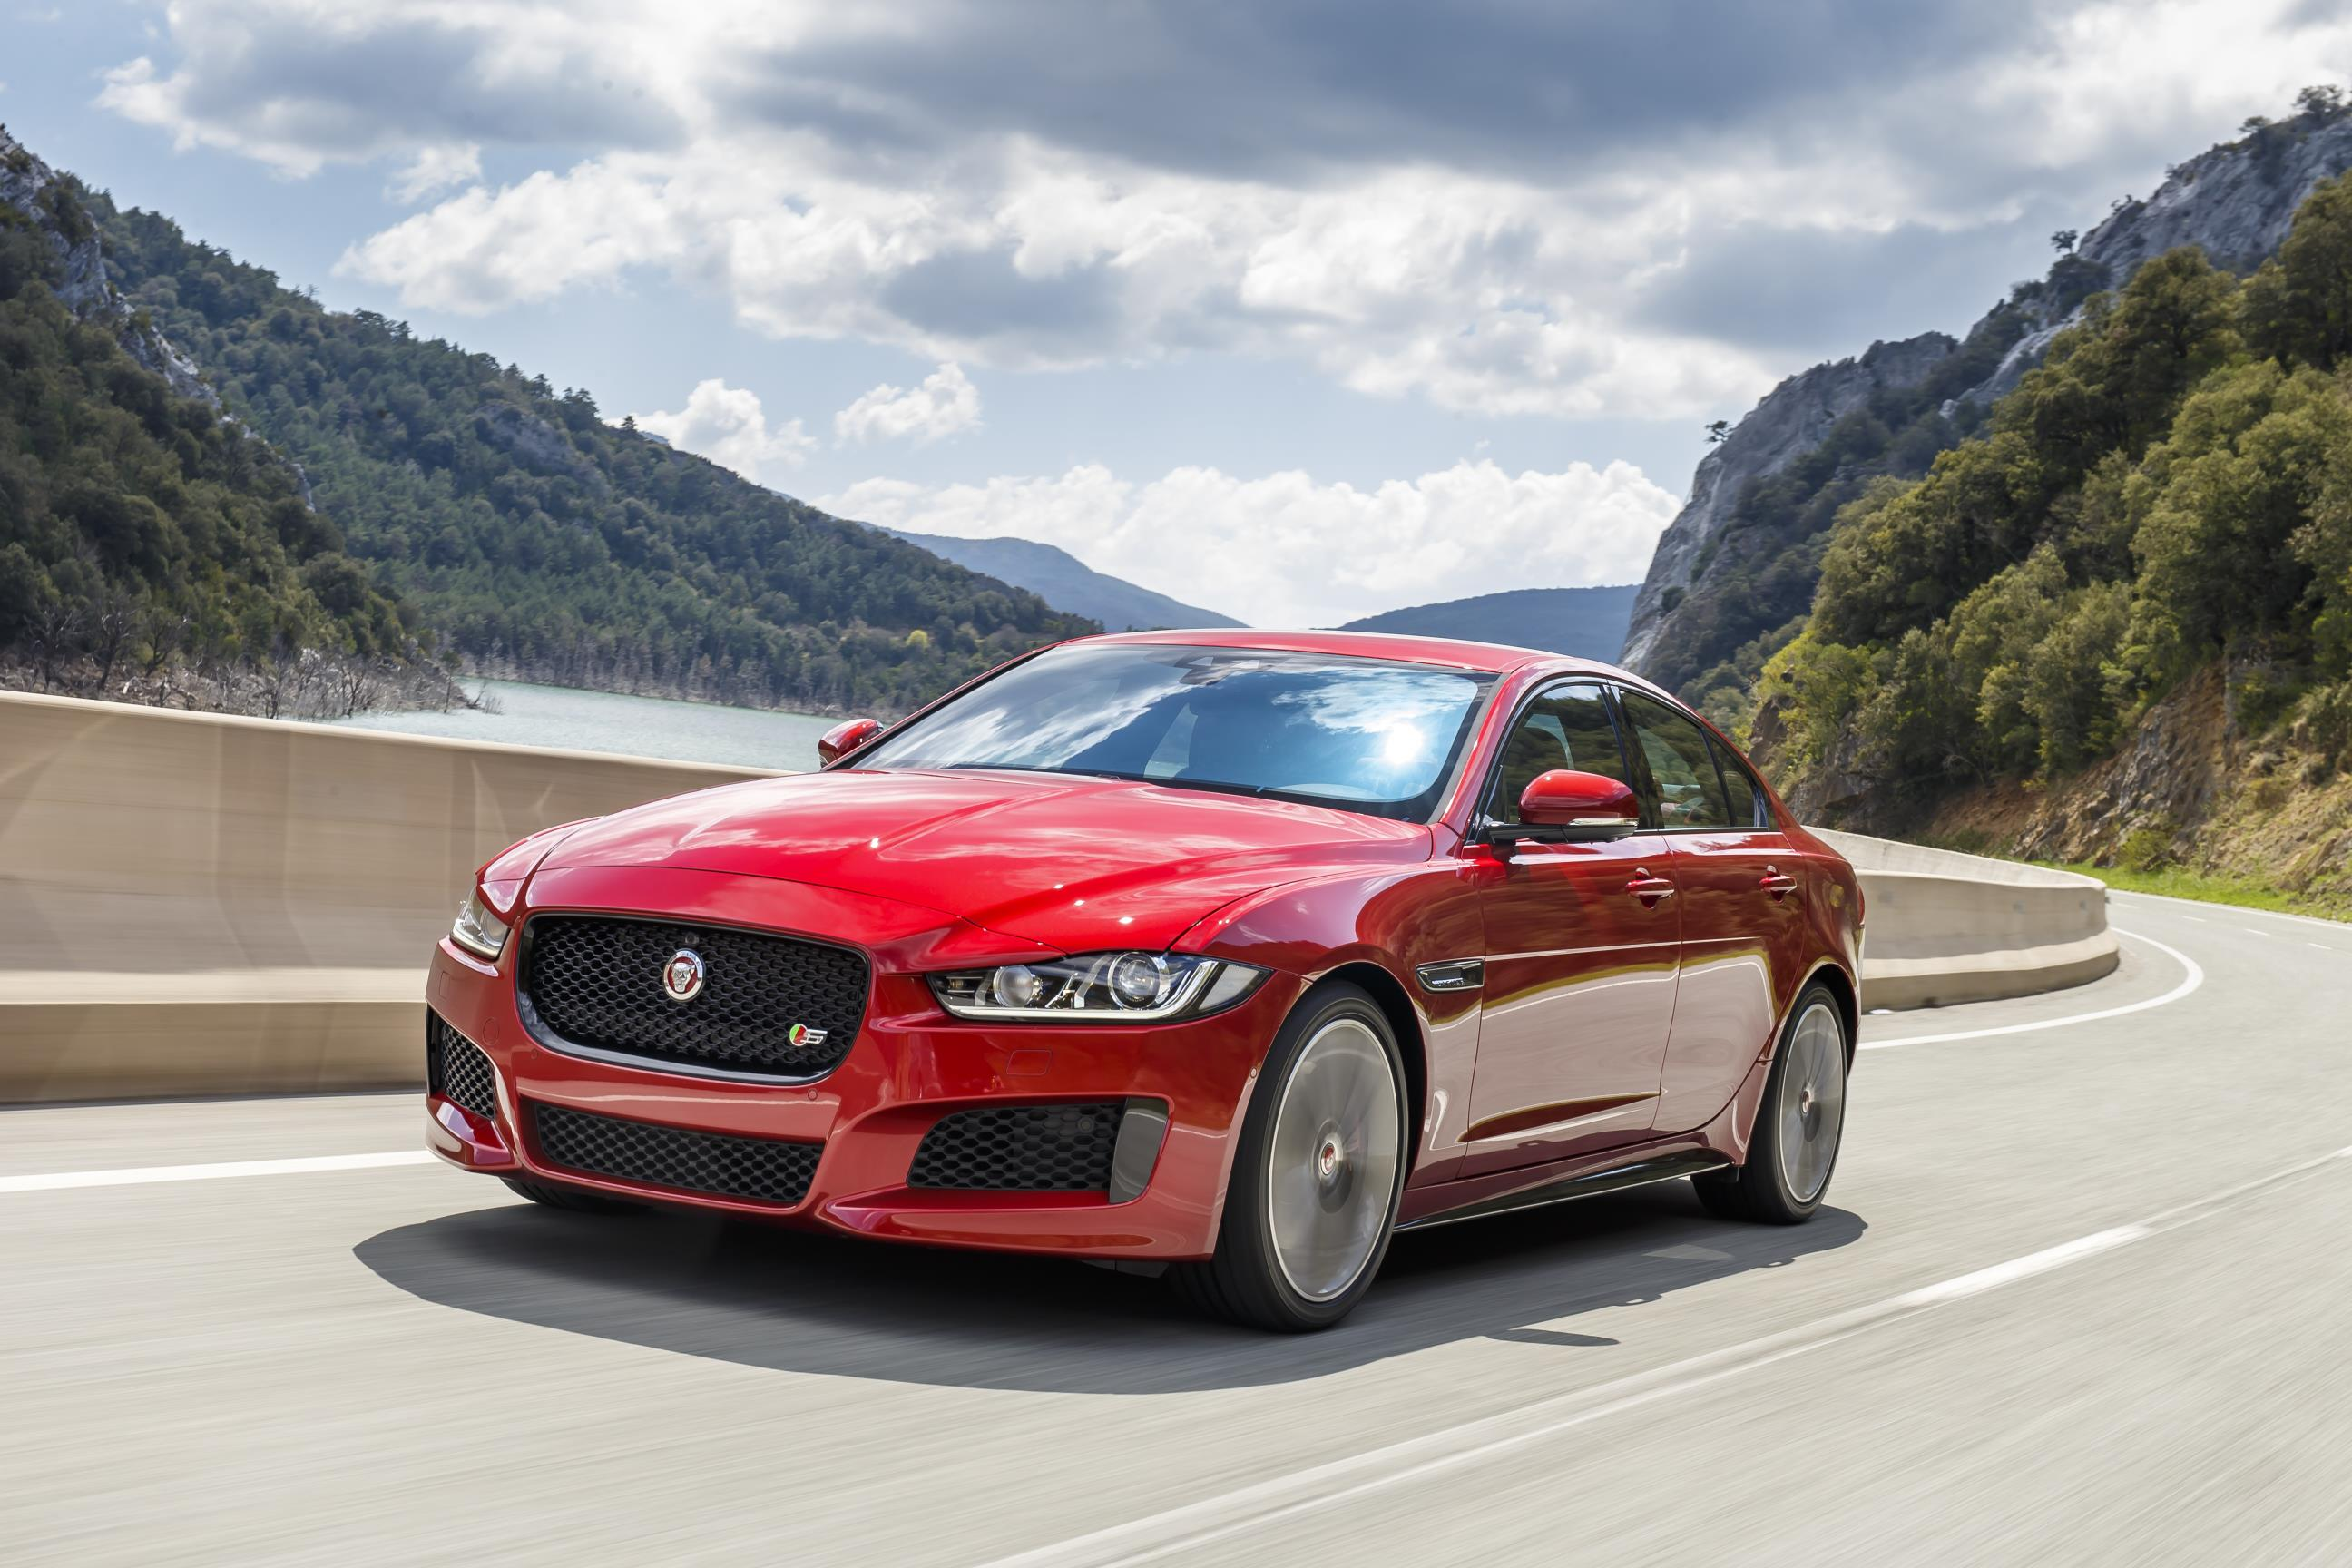 New 300hp engine for Jaguar XE, XF and F-Pace